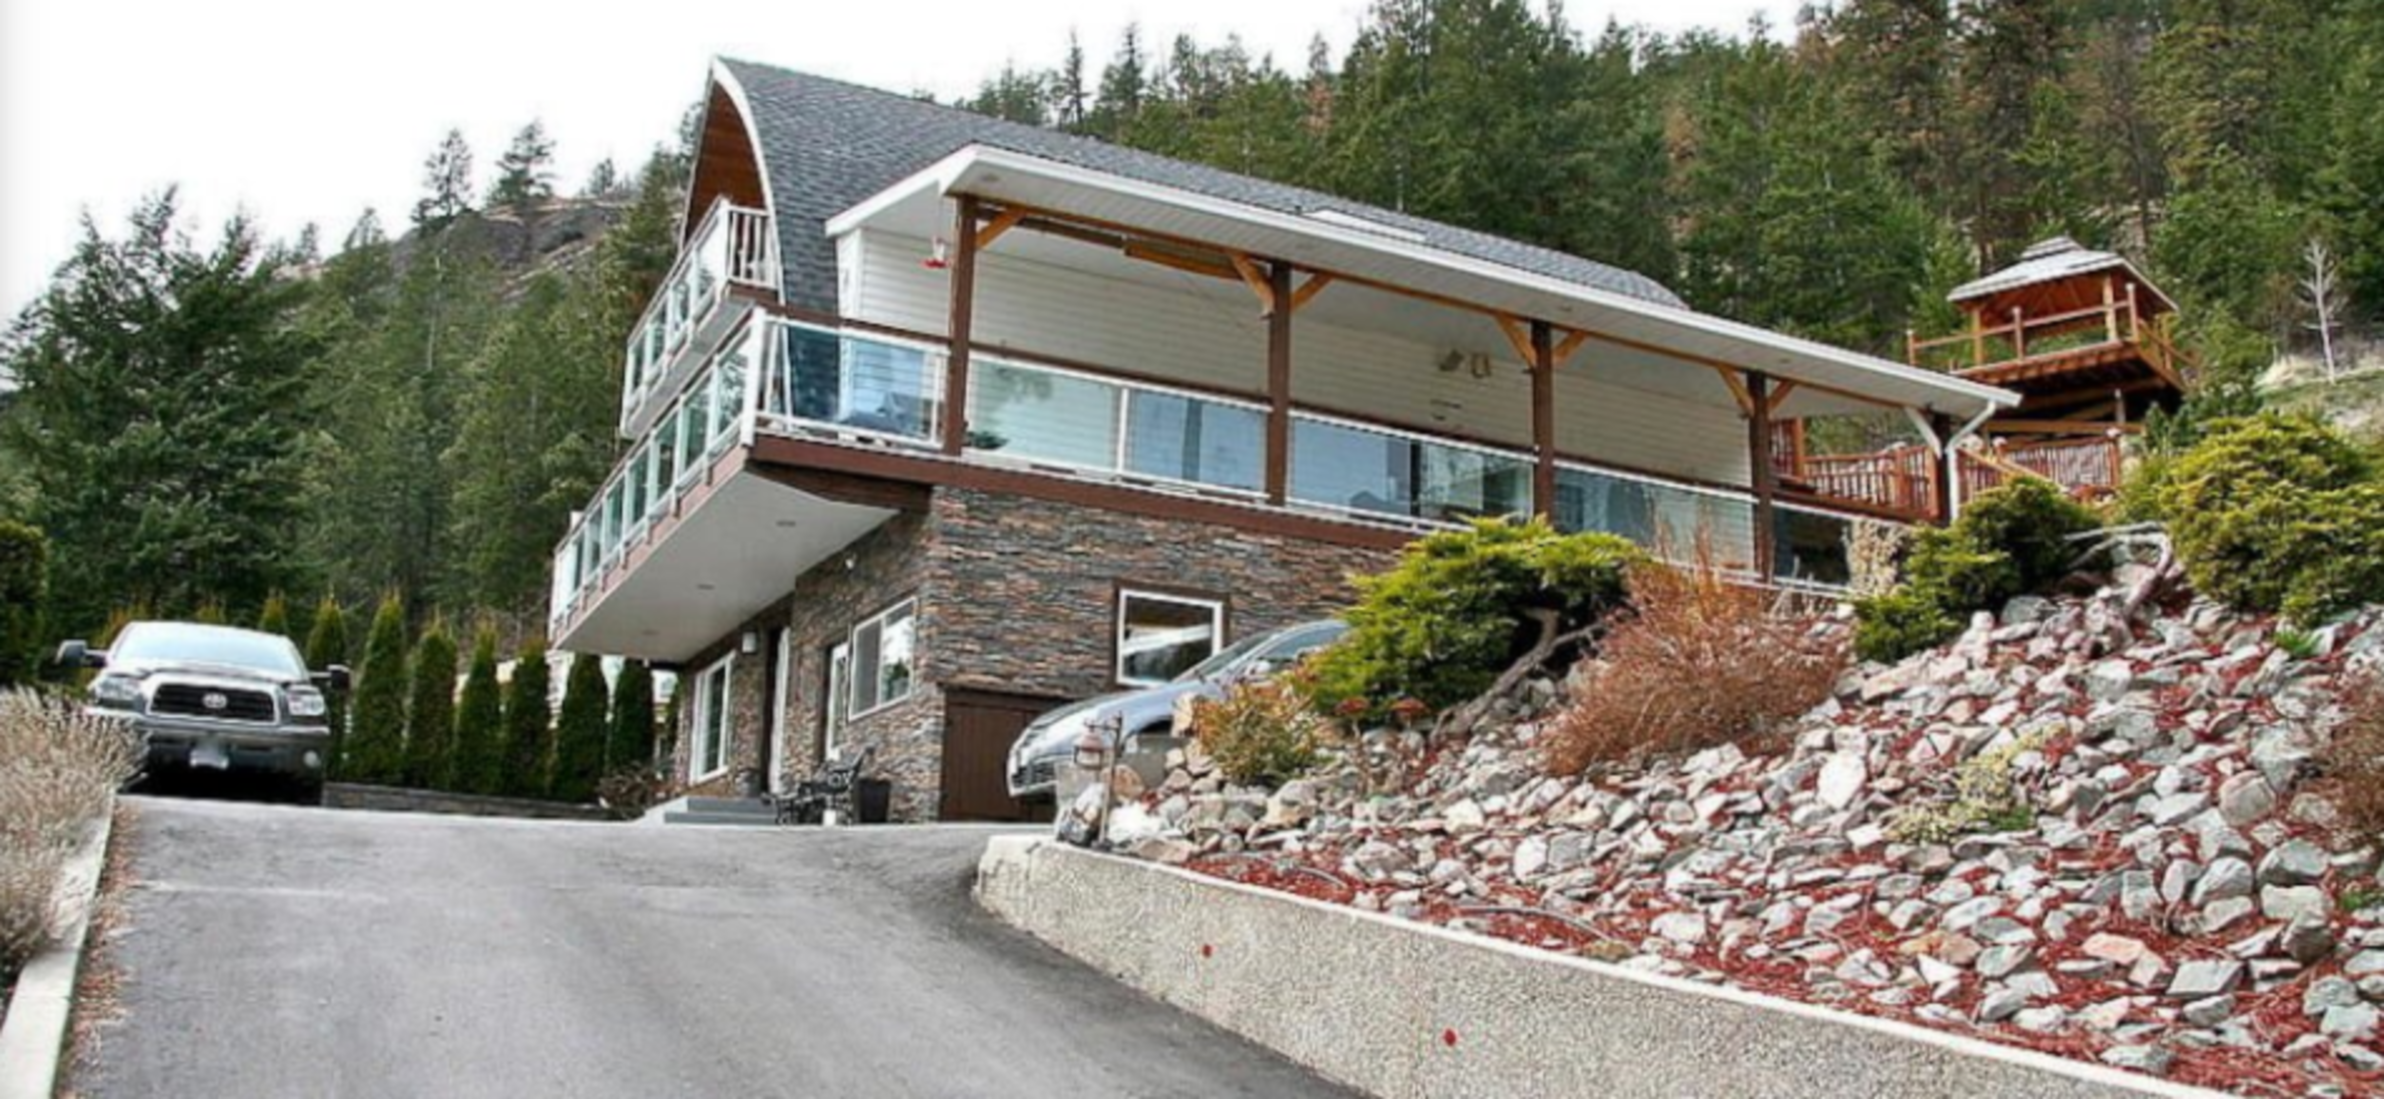 A person riding a skateboard up the side of a building at Chez Nicole Bed and Breakfast.